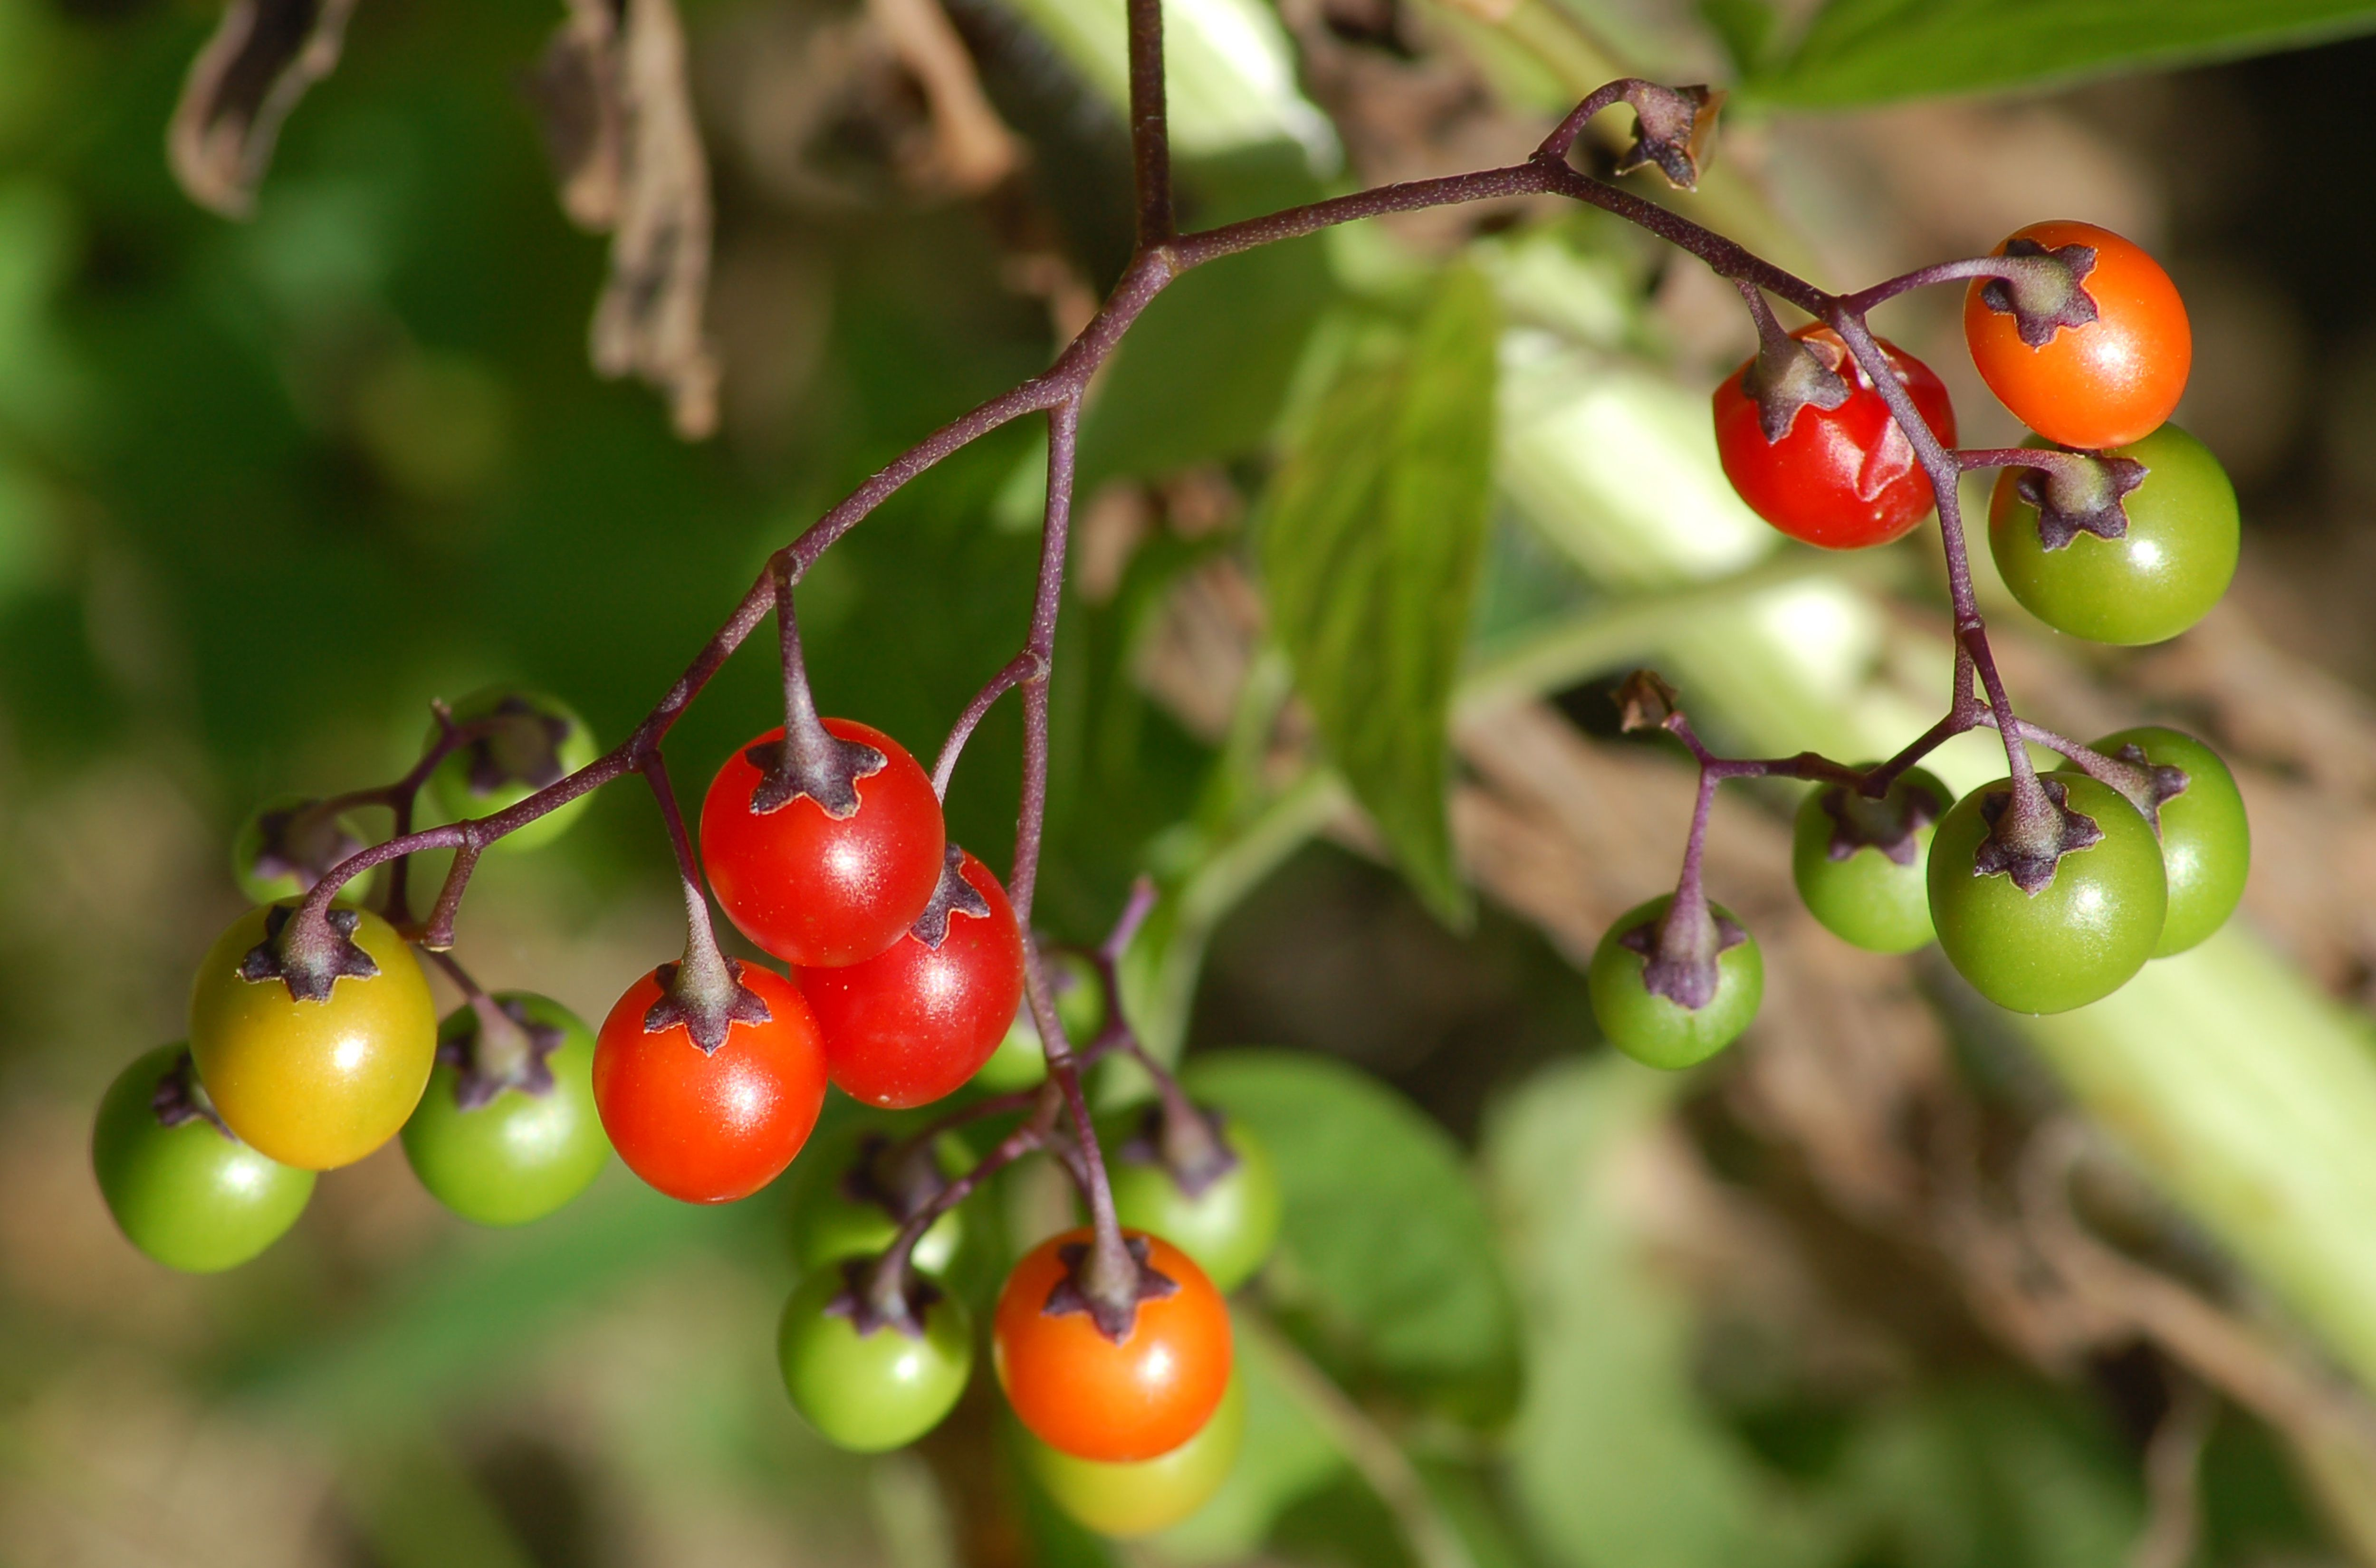 Pictures Of Poisonous Plants For Identification